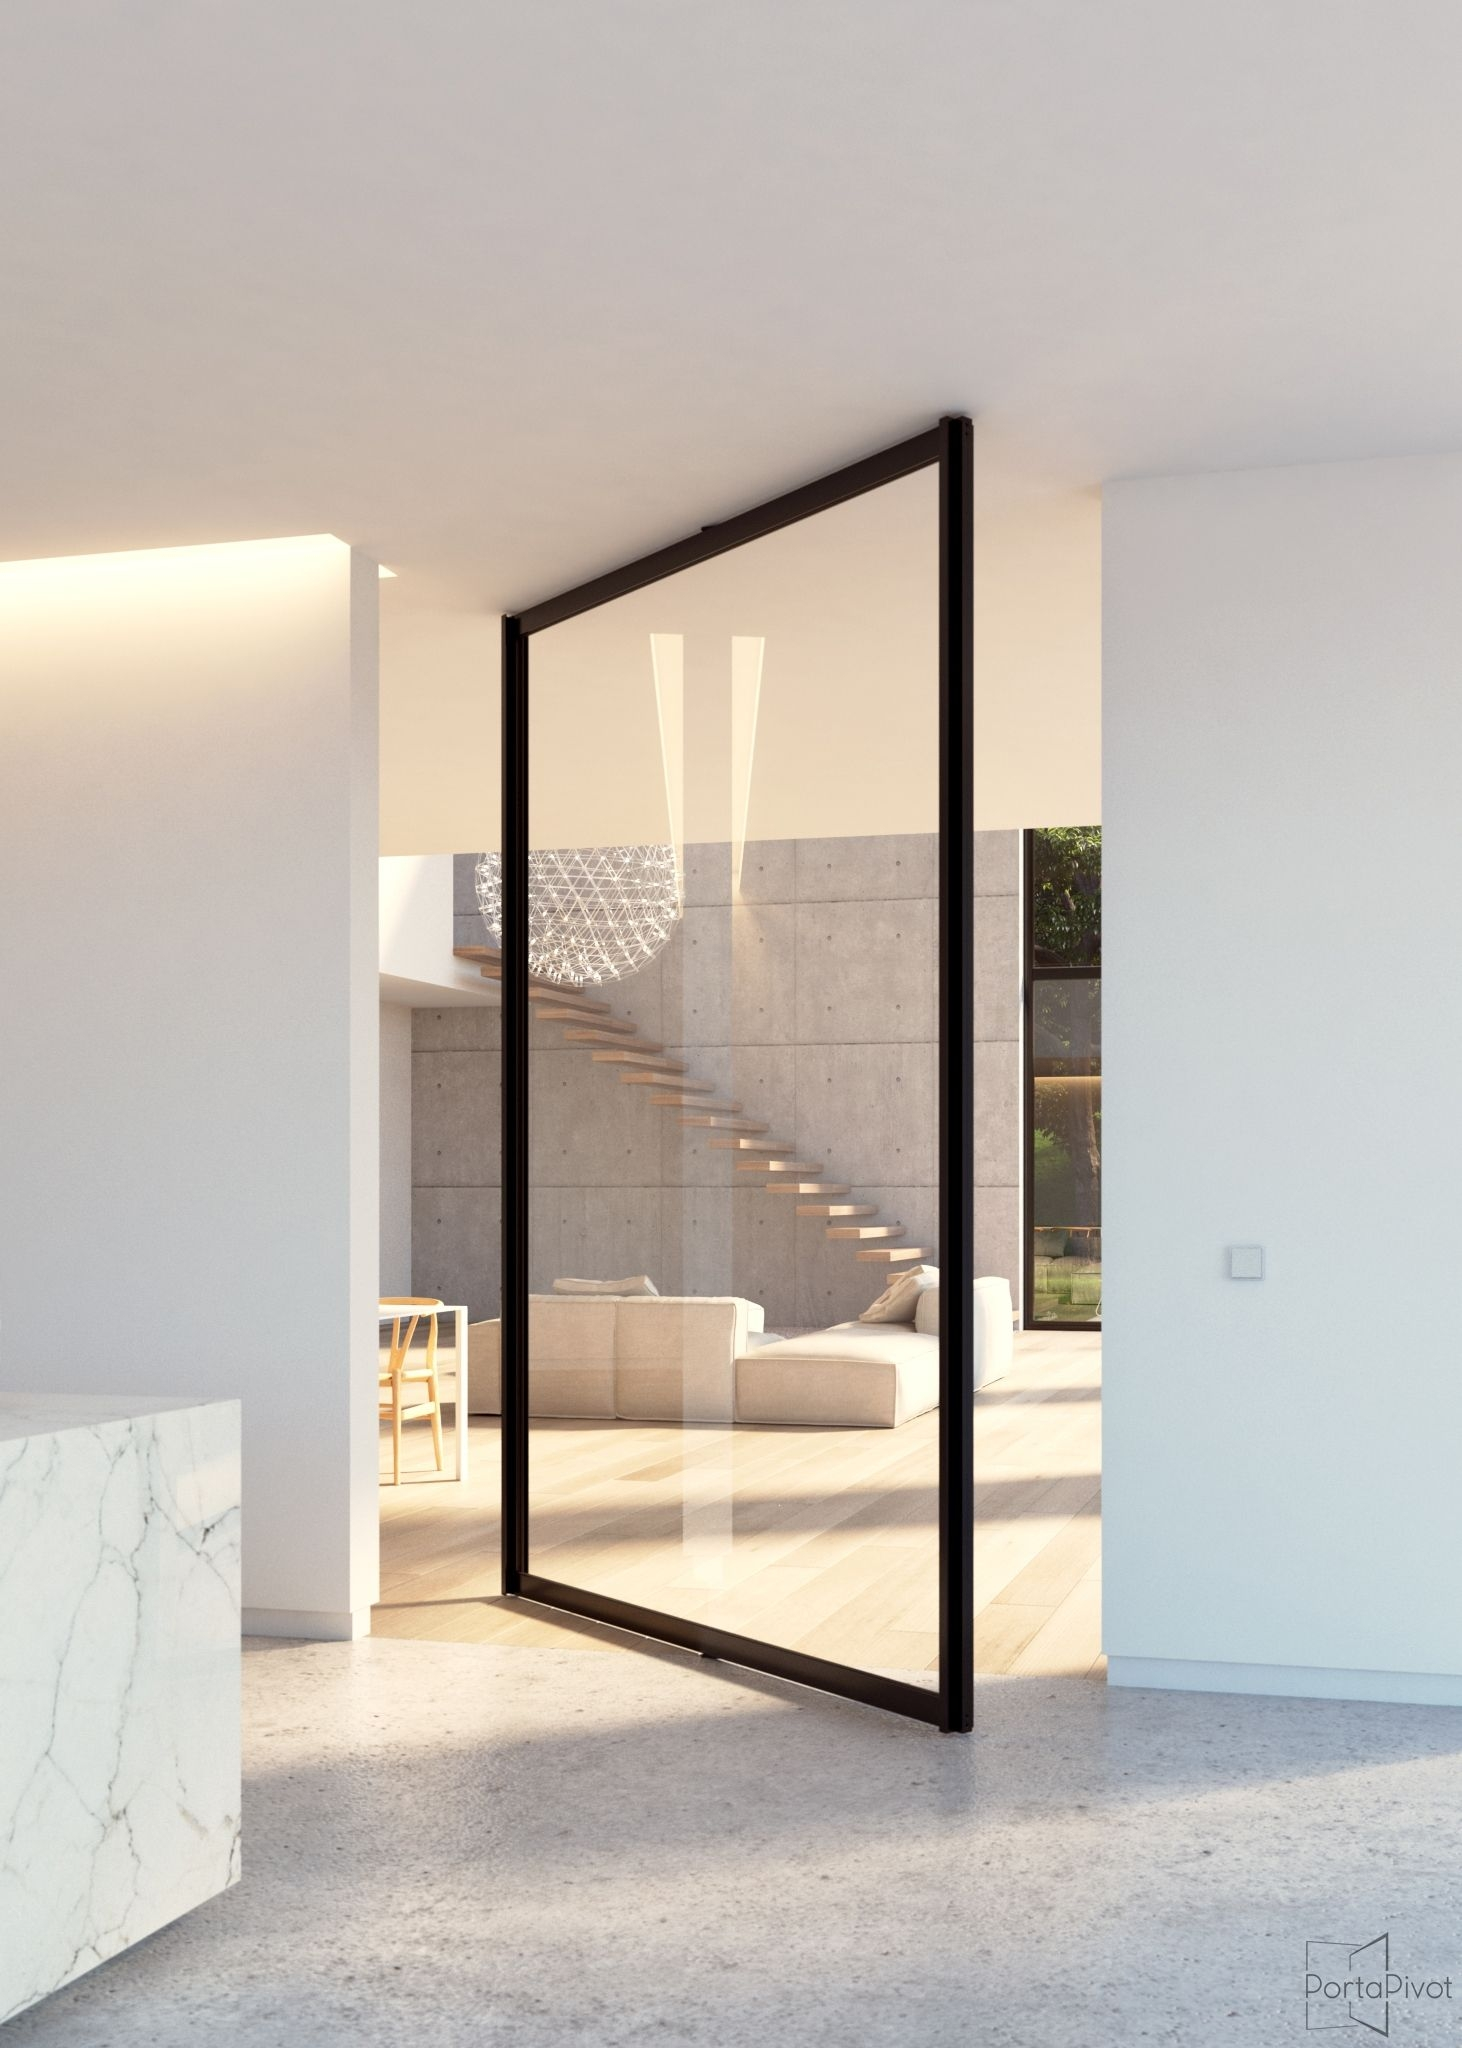 Steel look glass pivot door with central axis pivoting